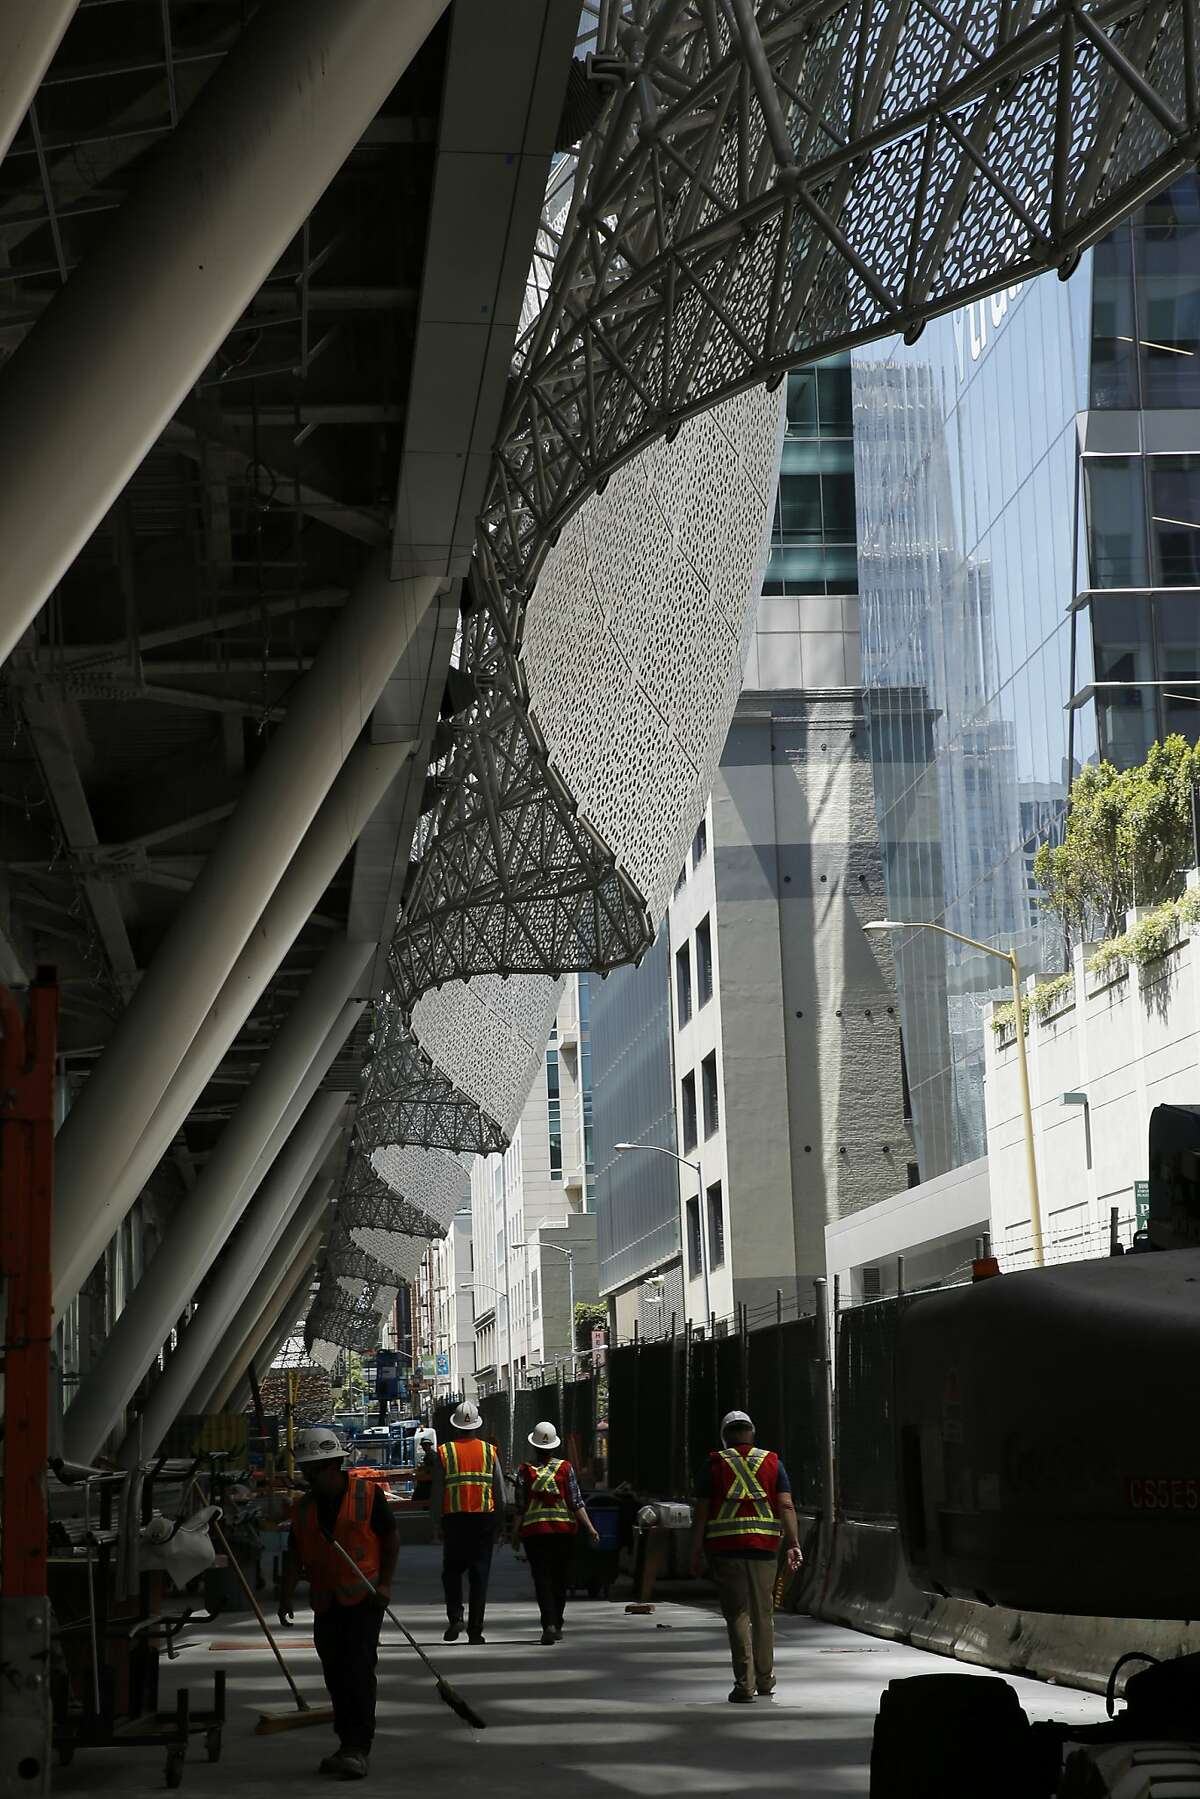 Workers continue construction at the Transbay Transit Center on Thursday, June 22, 2017, in San Francisco, Calif.